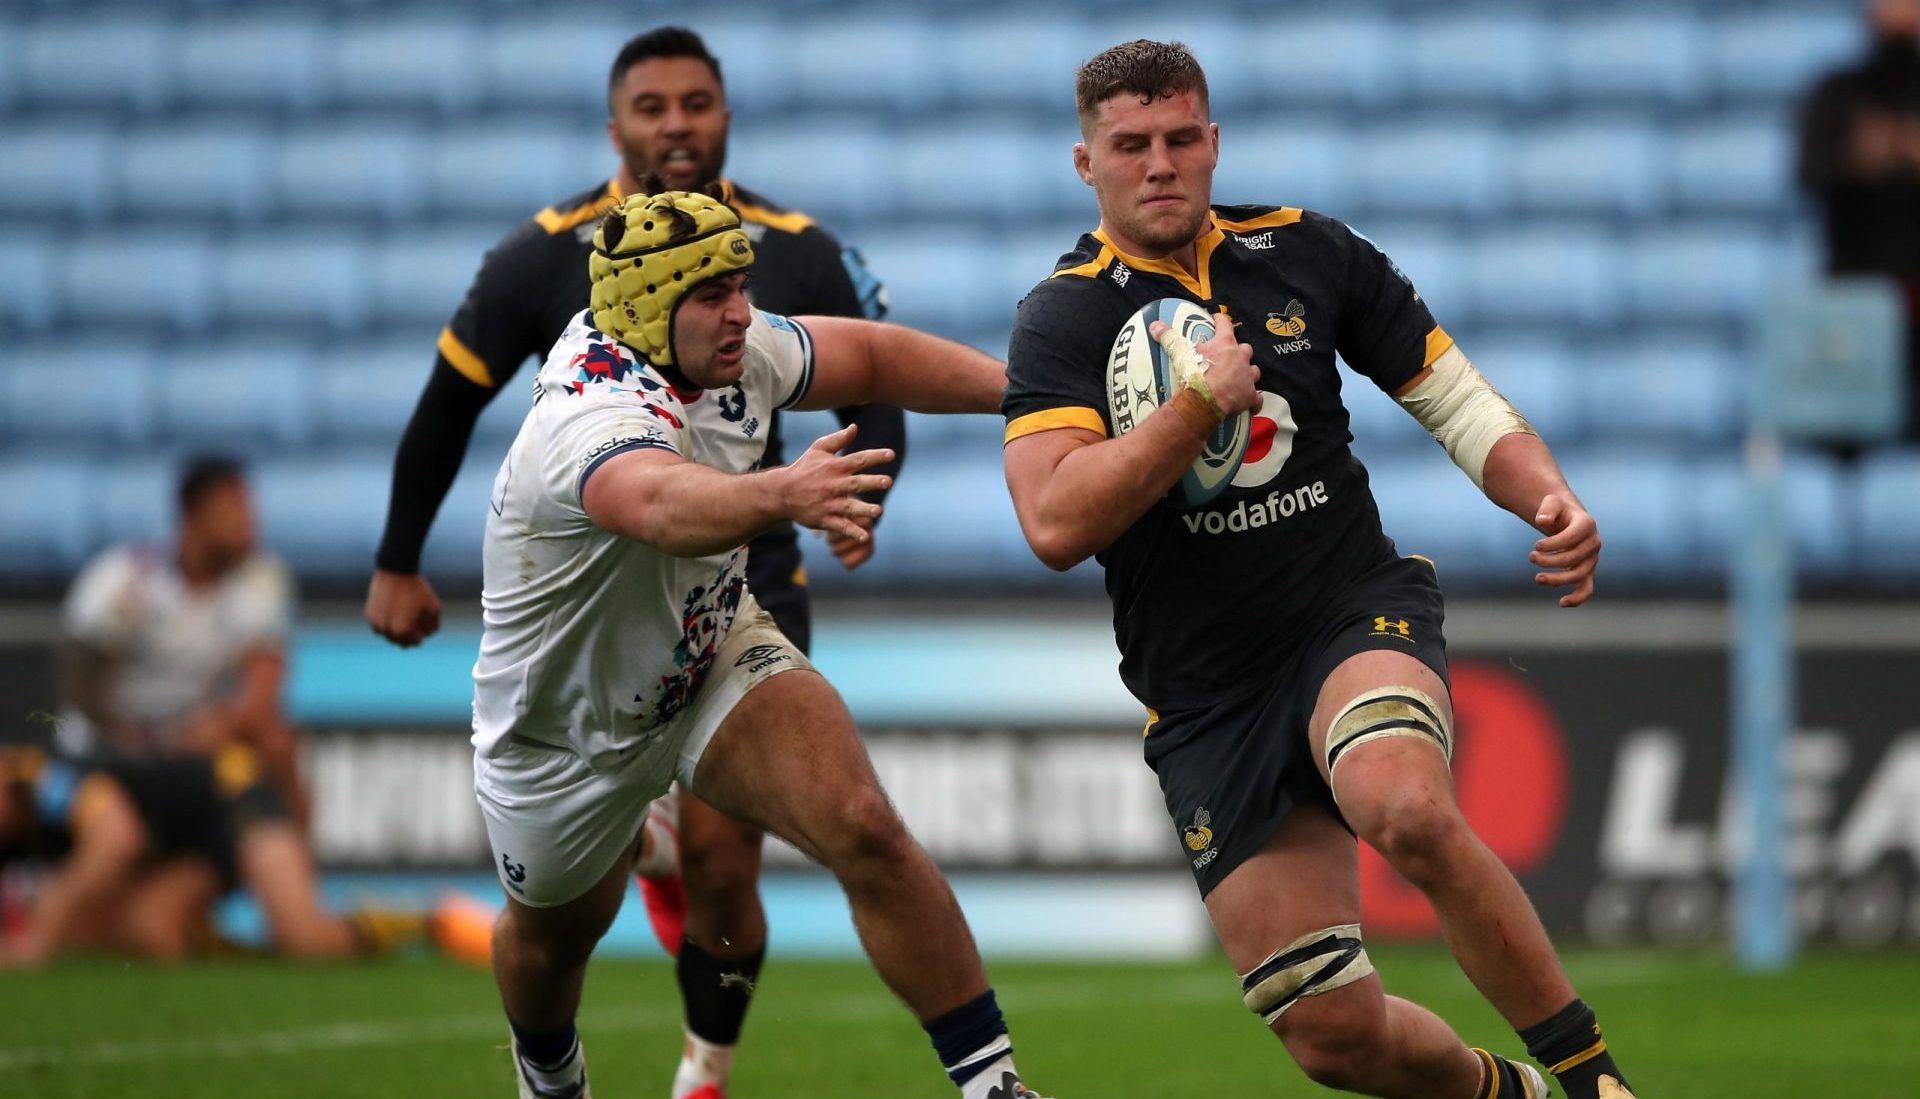 Willis brothers to the fore as Wasps edge out Bristol